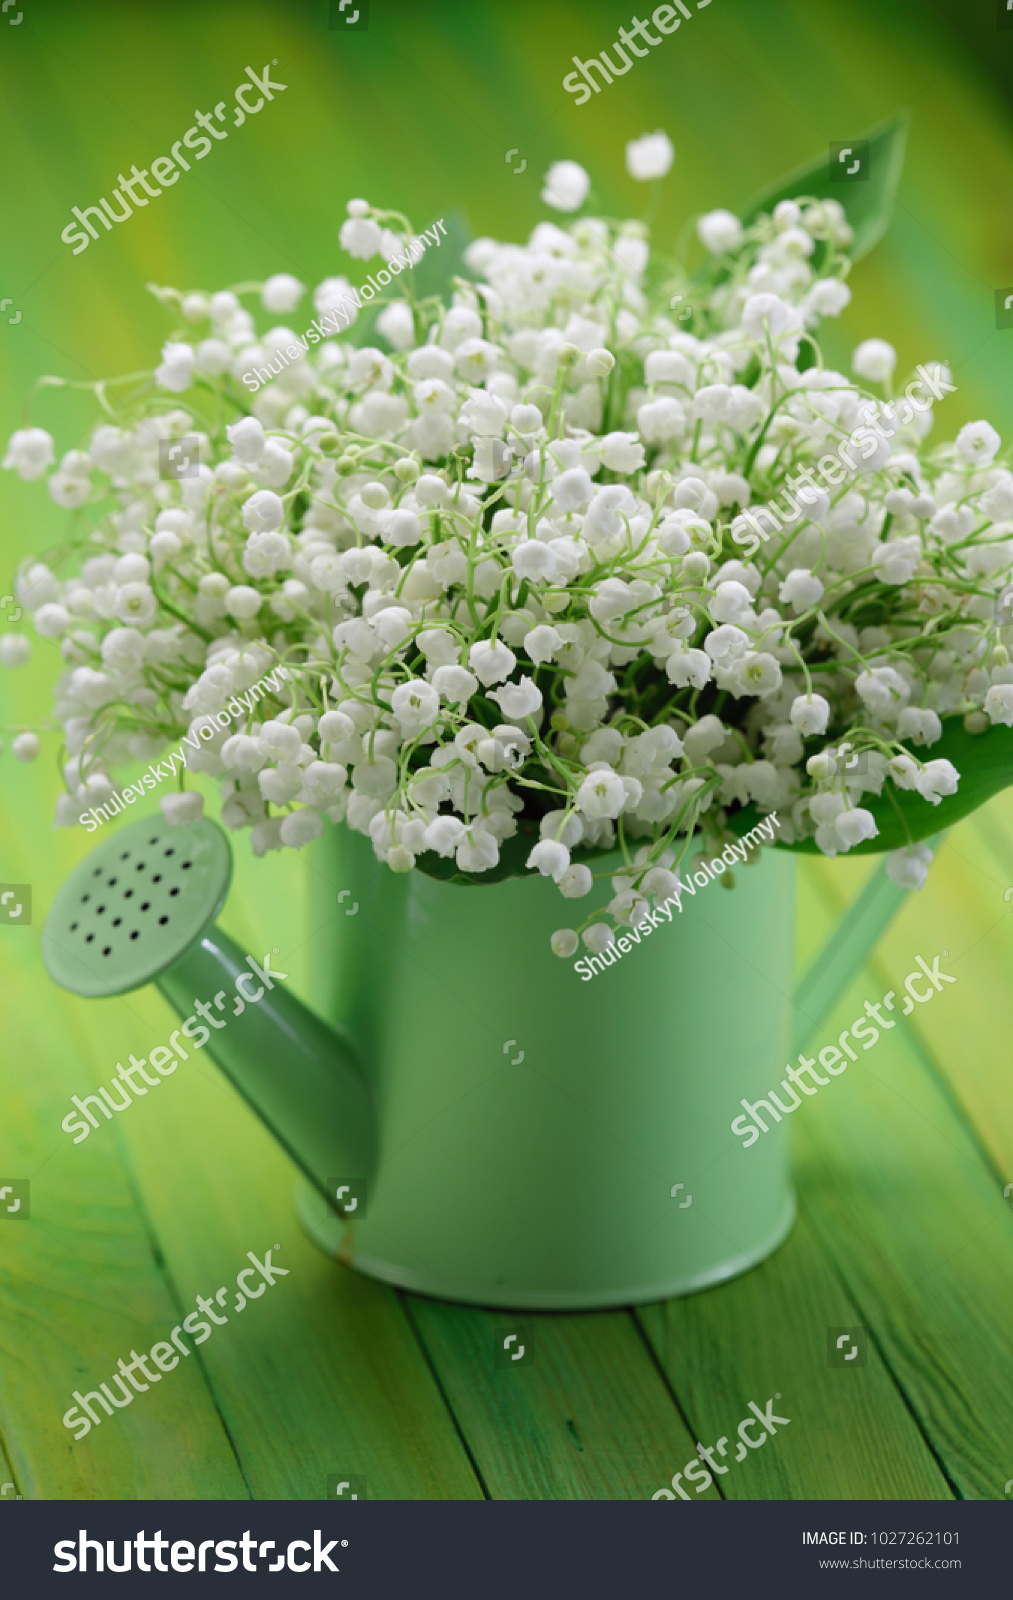 Lily valley flowers bouquet vase stock photo royalty free lily of the valley flowers bouquet in a vase izmirmasajfo Gallery